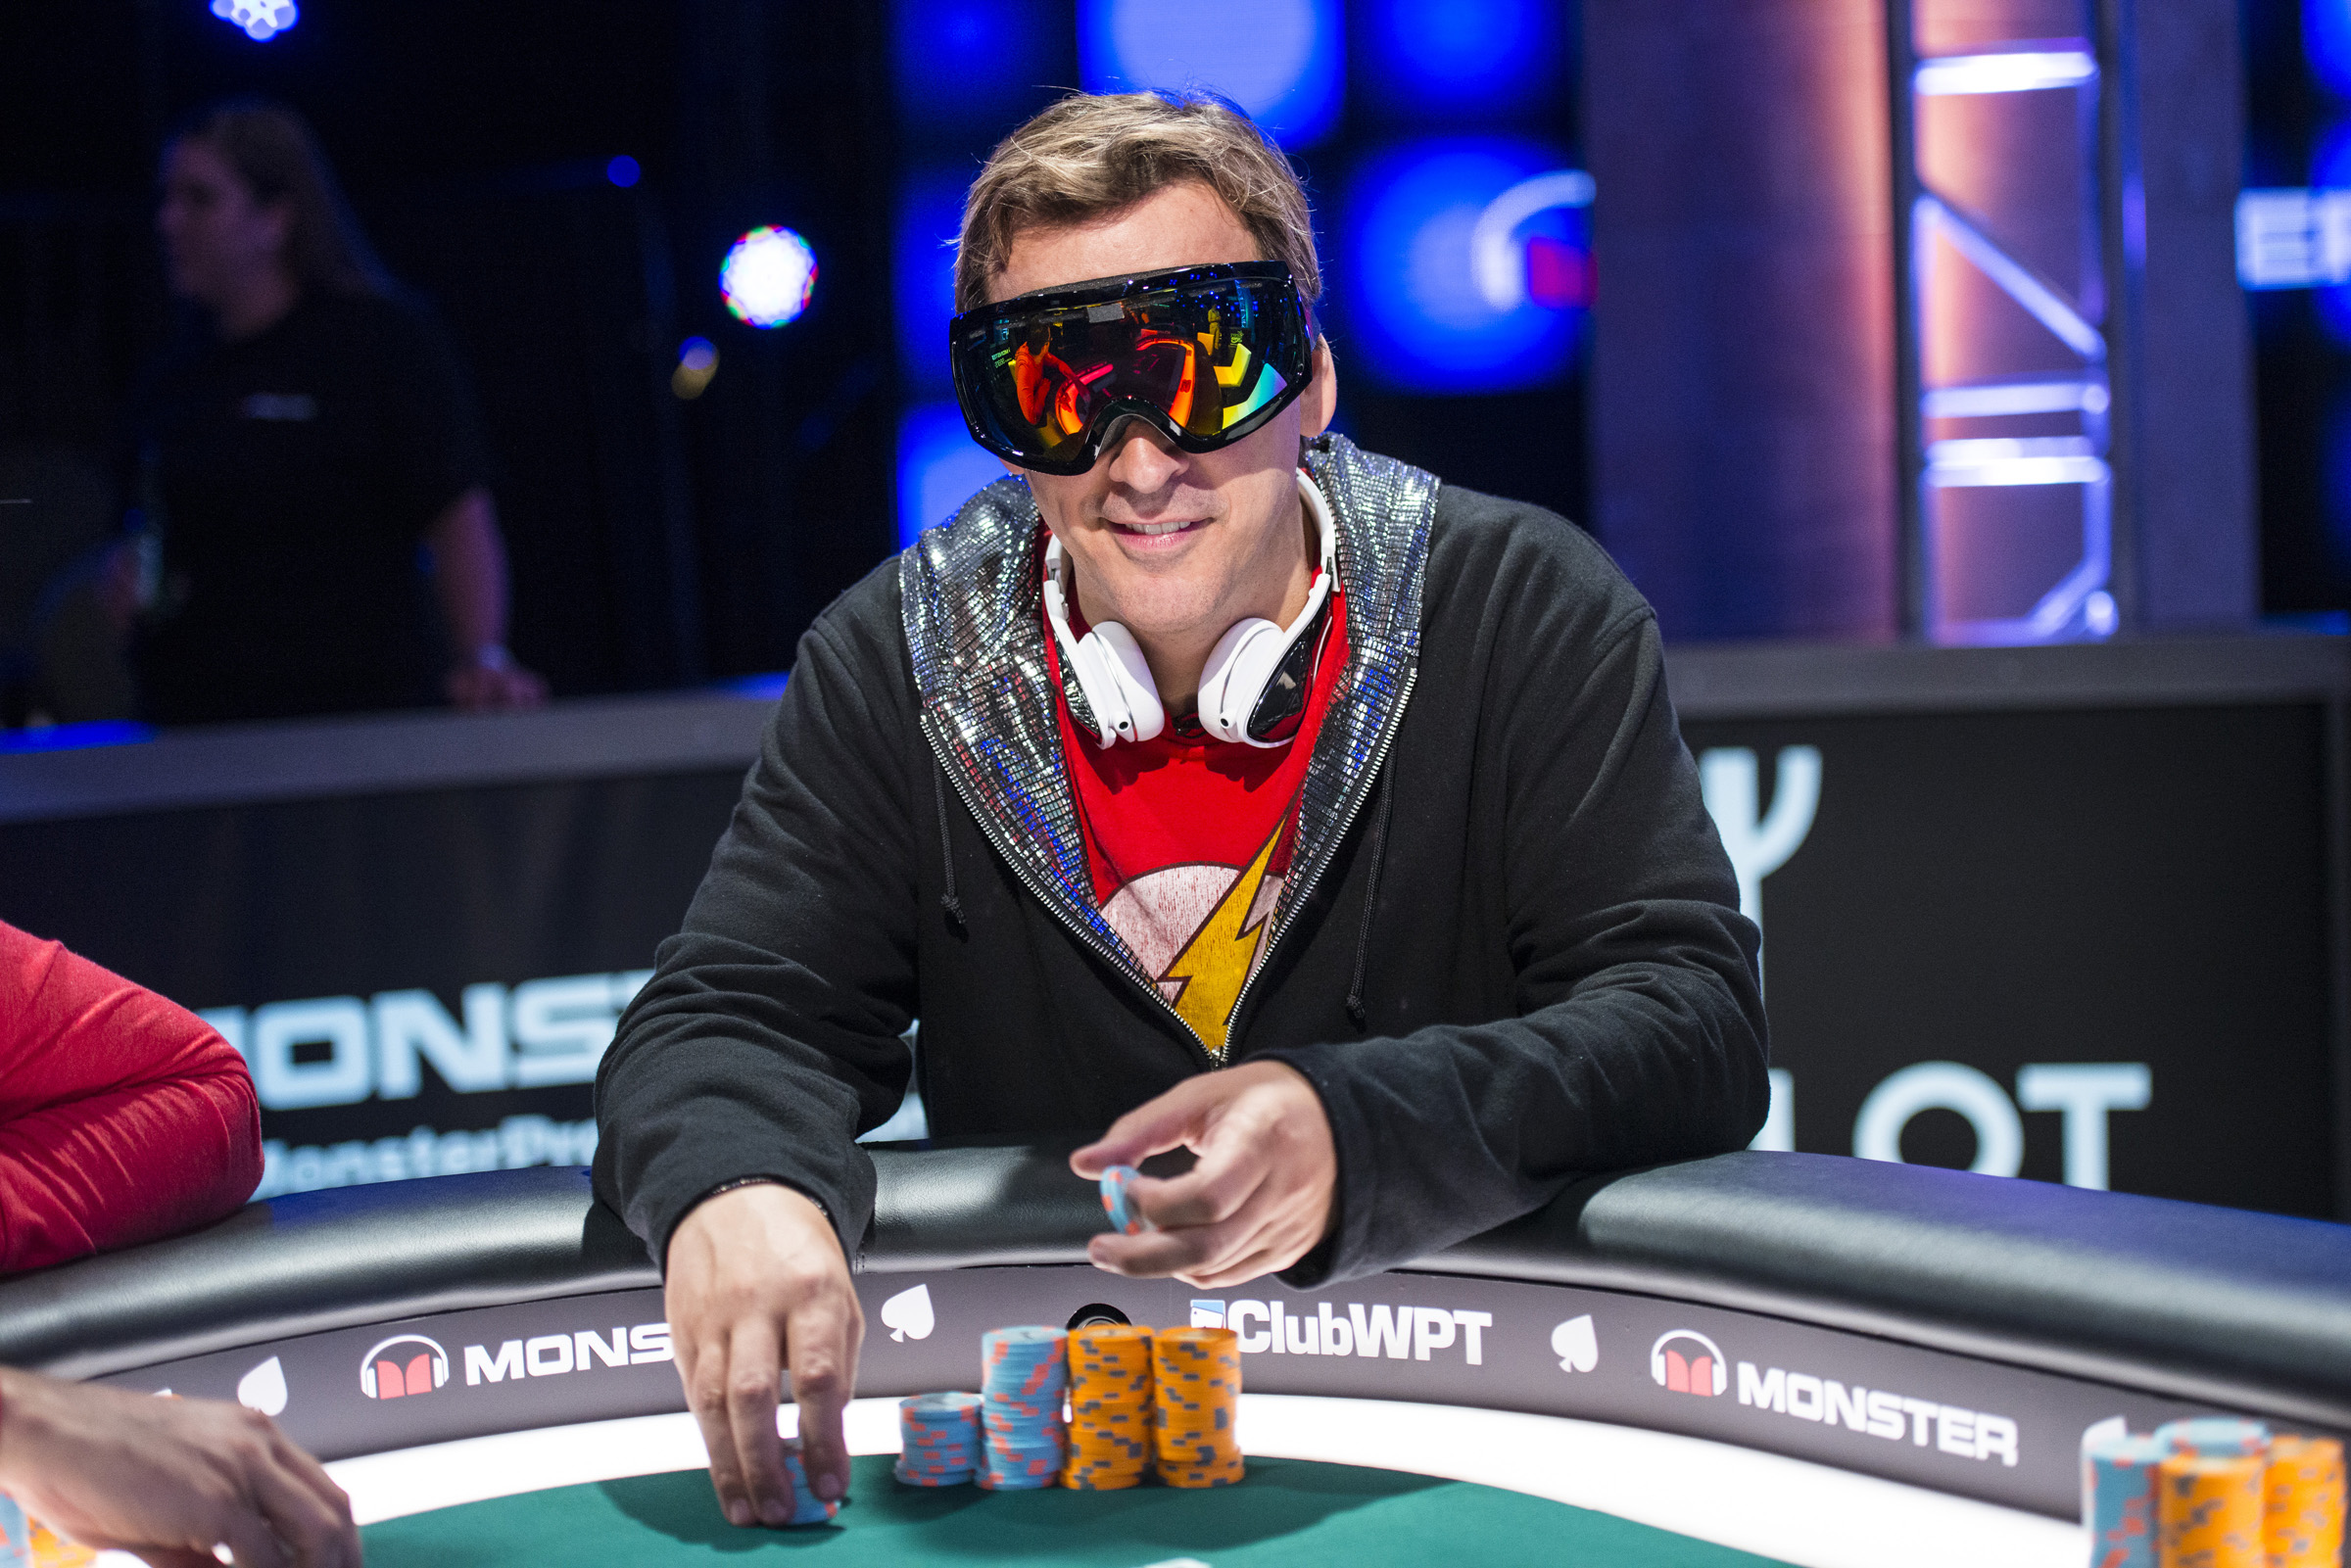 Heart-to-heart: Phil Laak, the great poker eccentric